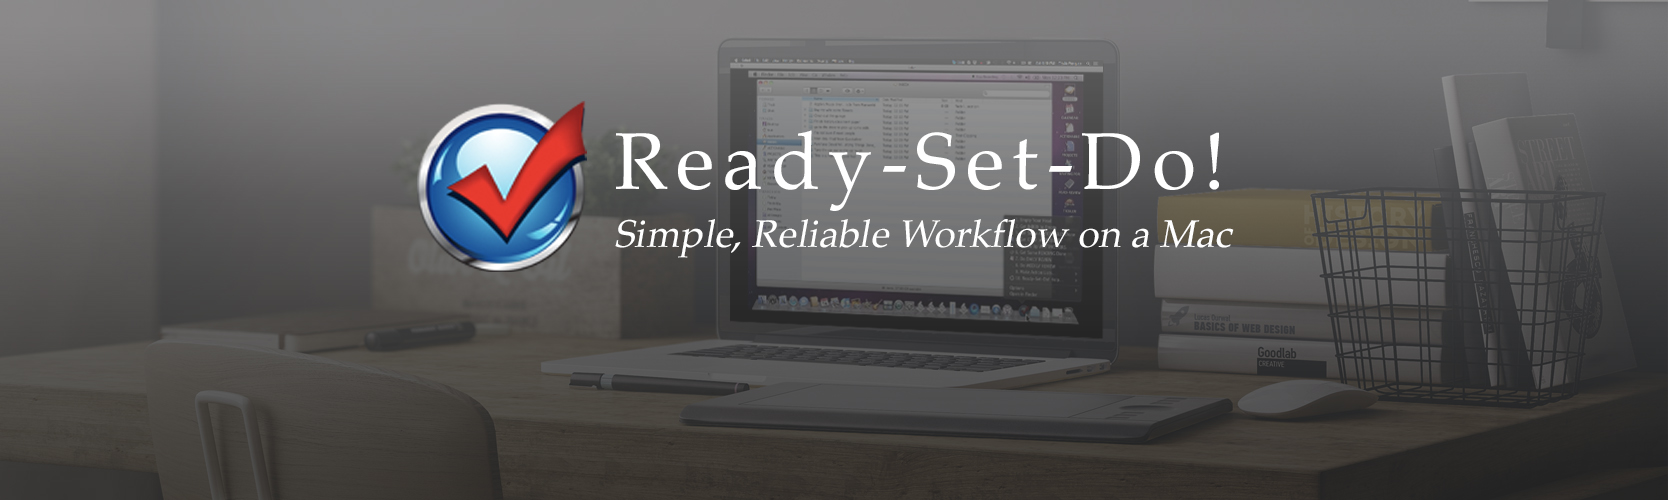 Ready-Set-Do! | Simple, Reliable Workflow on a Mac